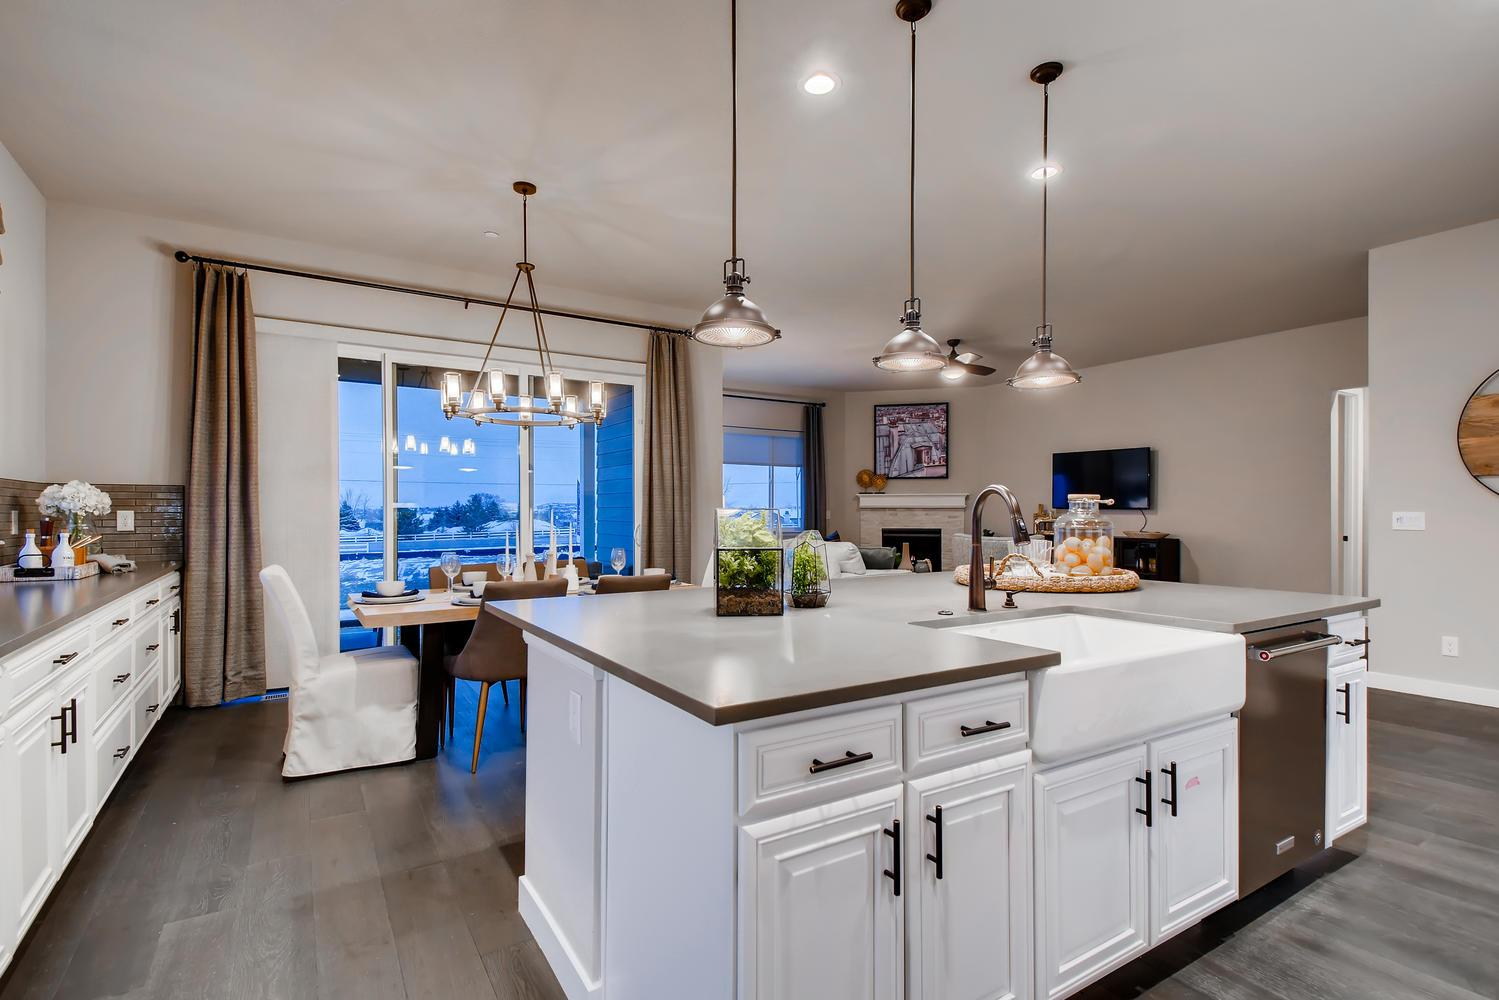 'Promontory at Todd Creek' by Richfield Homes in Denver